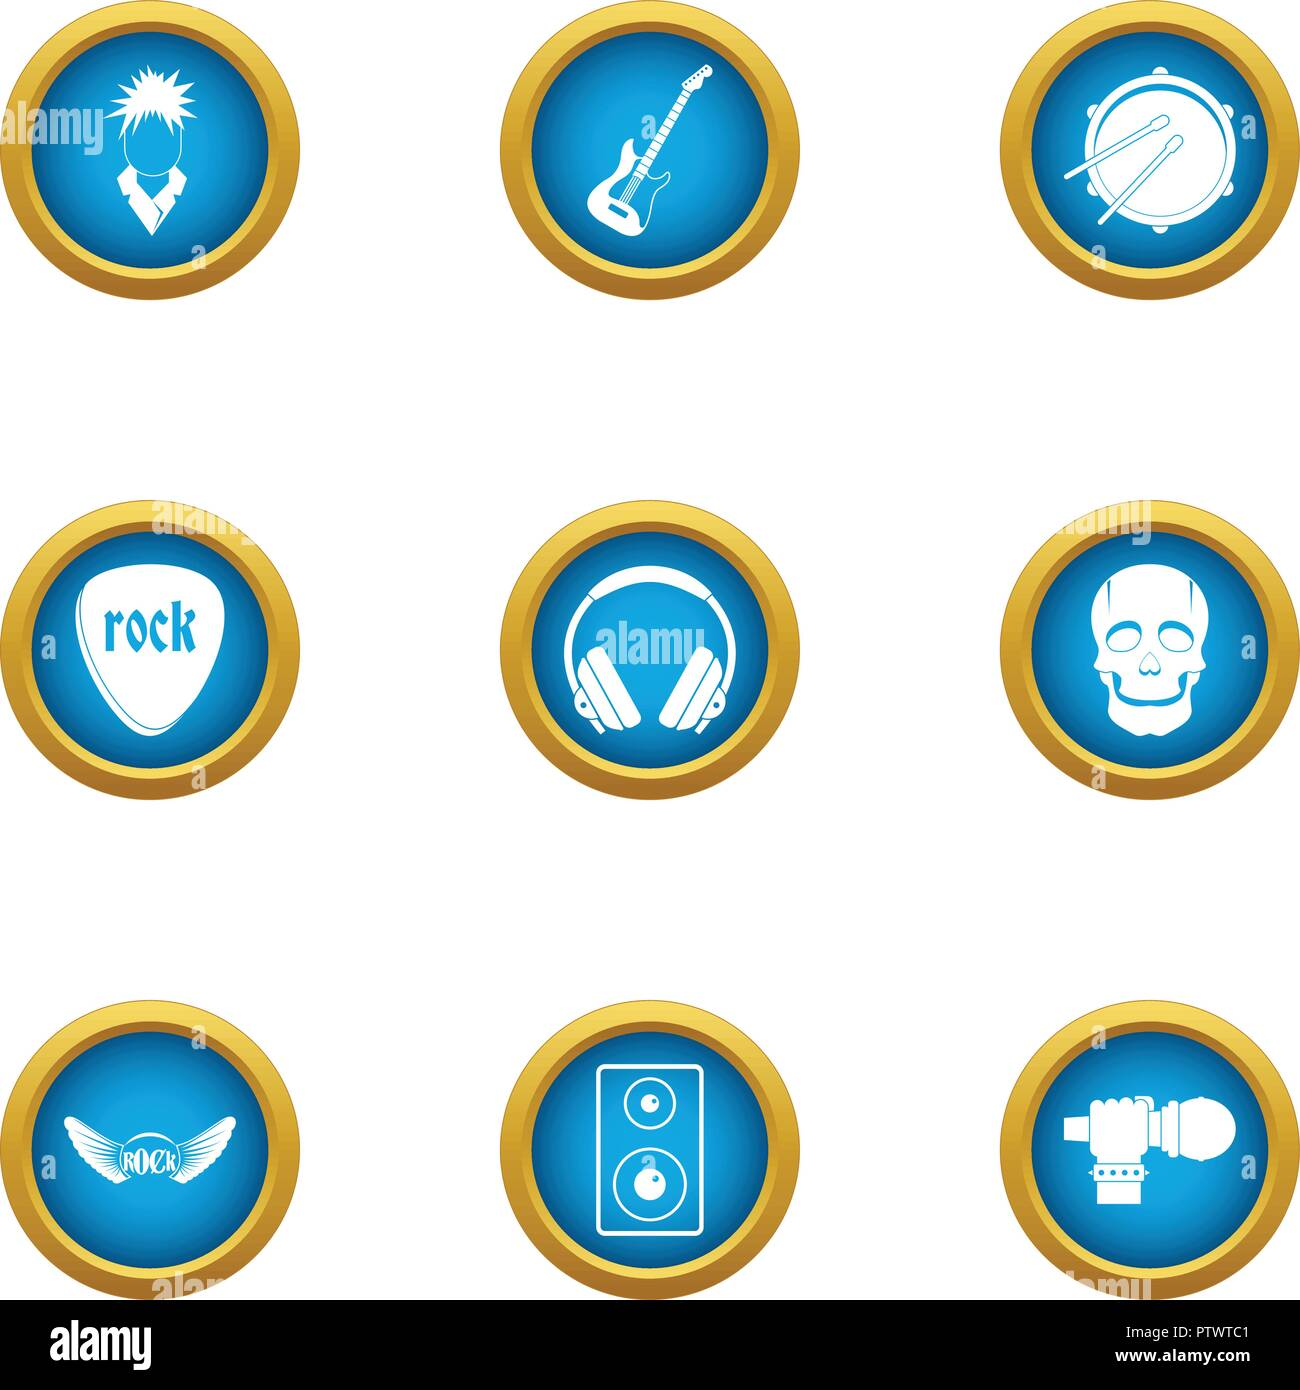 Rock playlist icons set, flat style - Stock Image